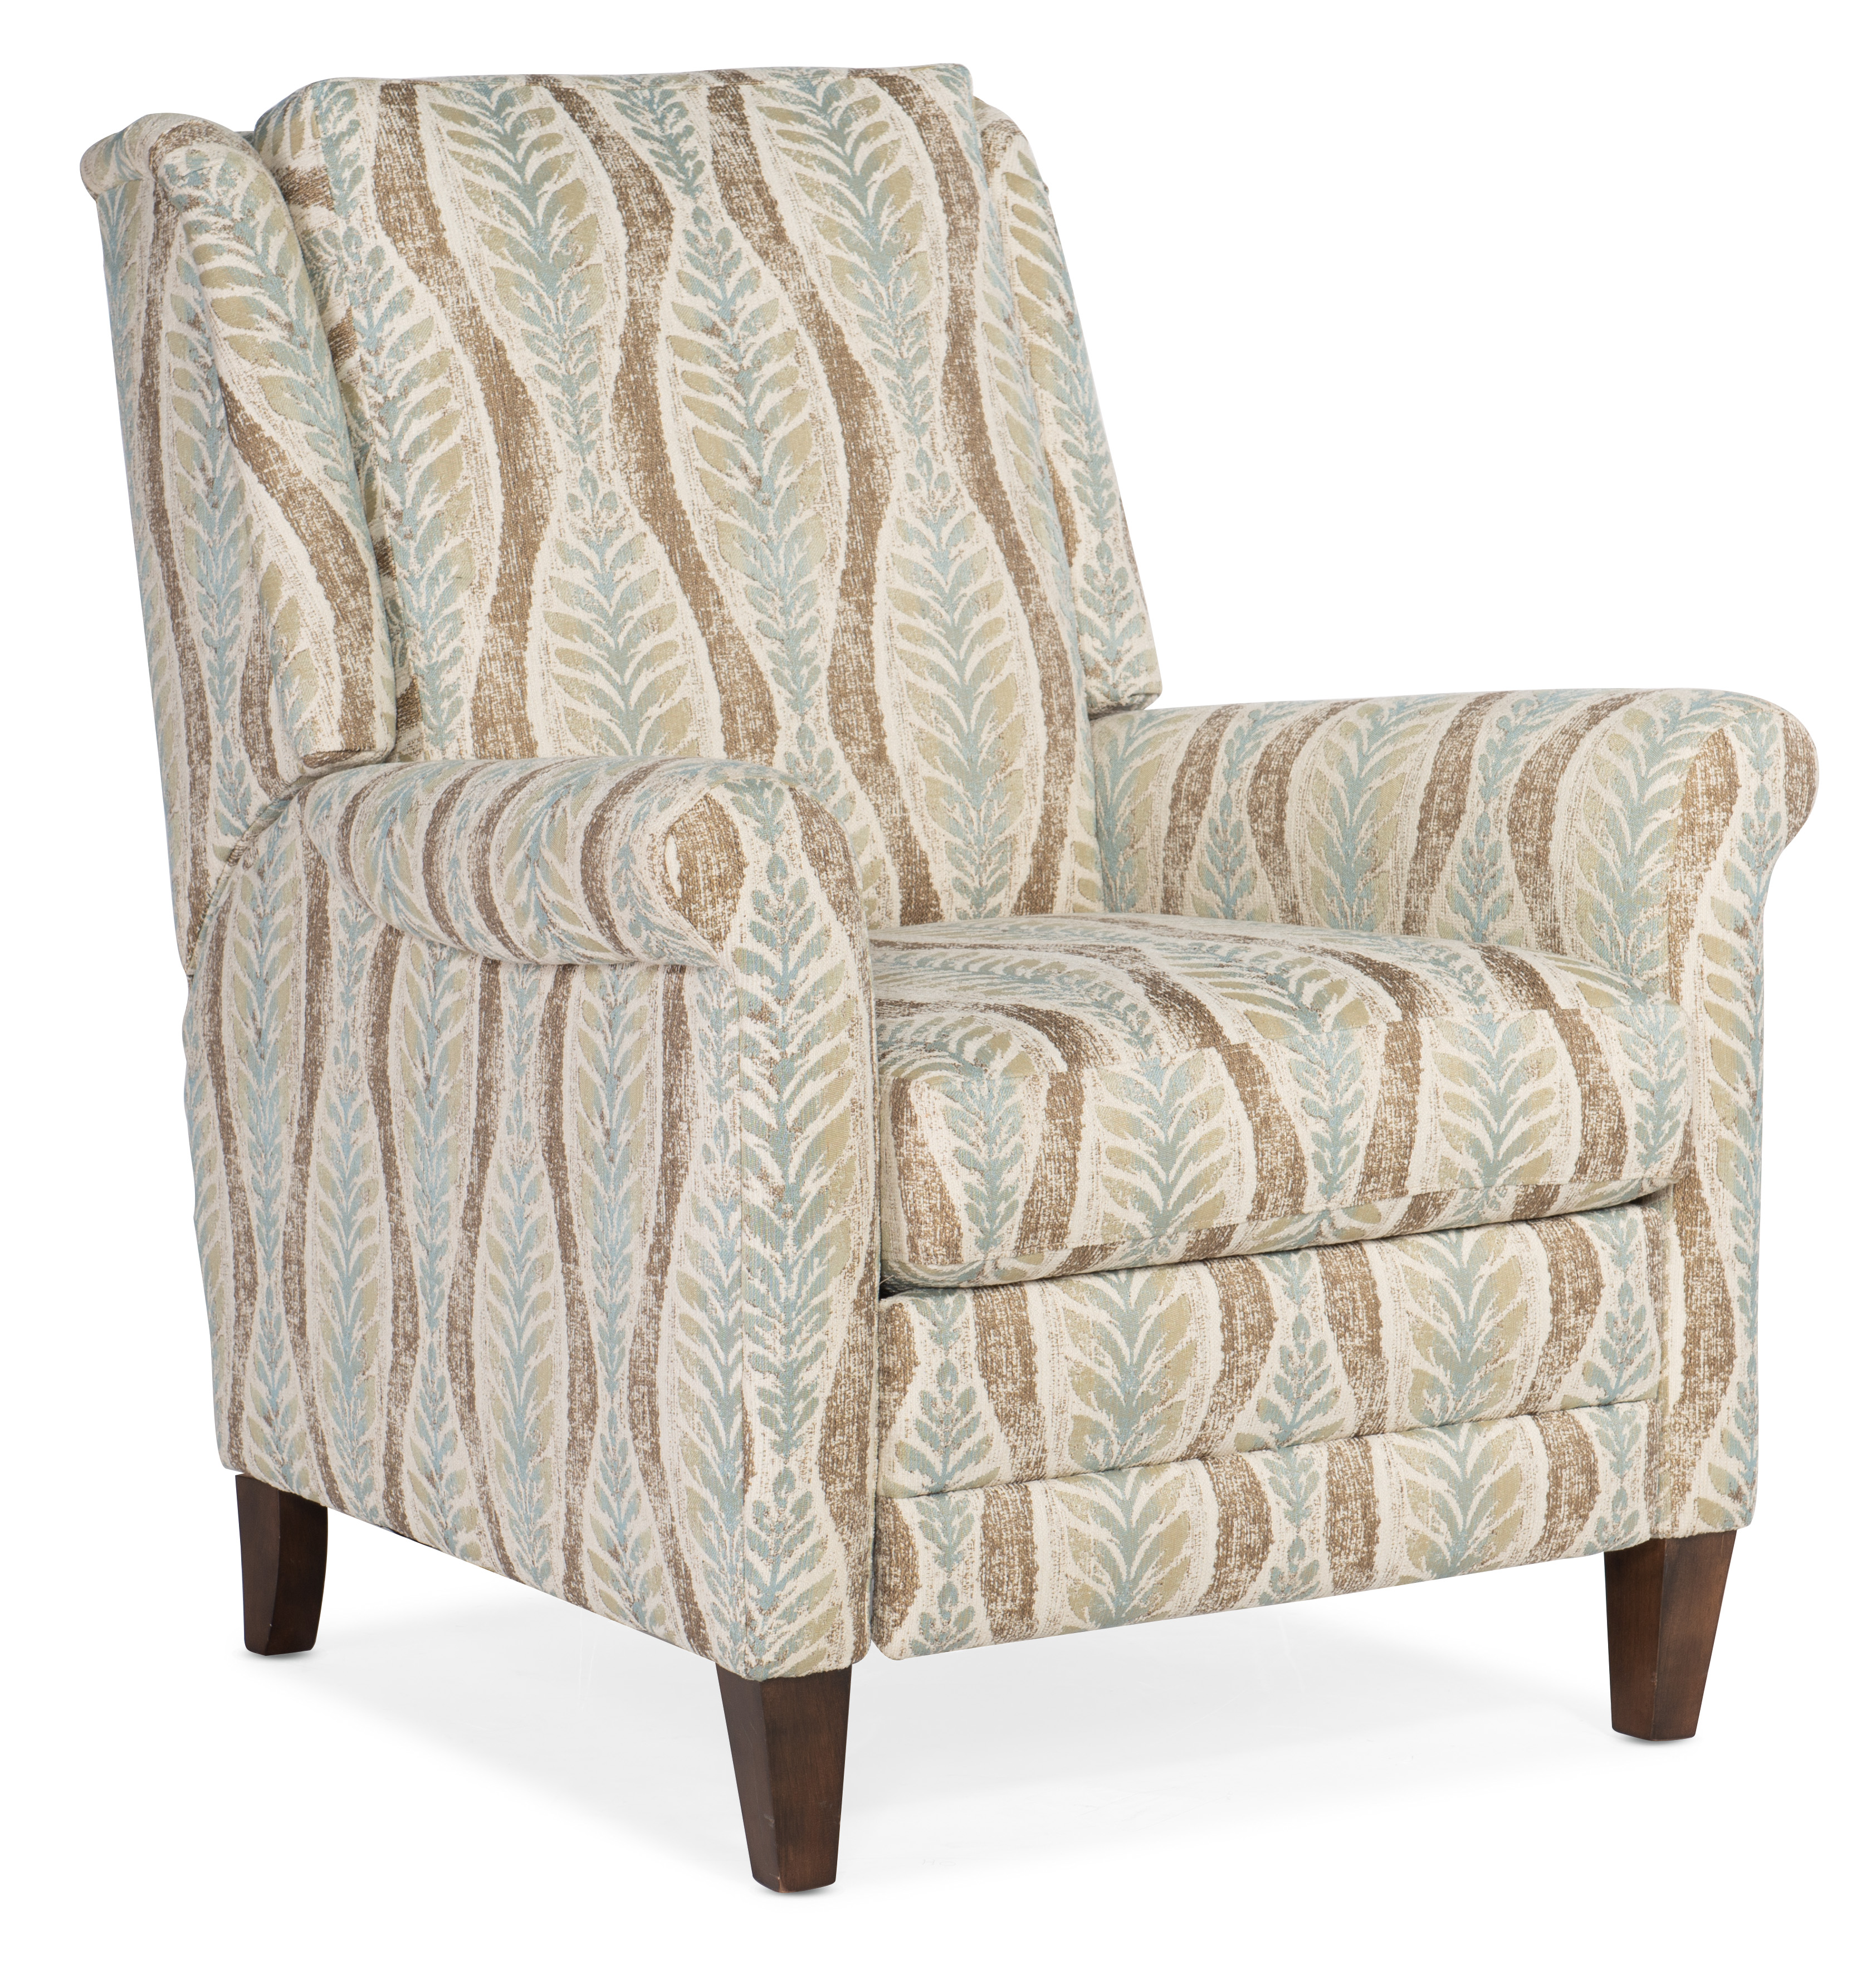 Danae Push Back Recliner by Sam Moore at Story & Lee Furniture